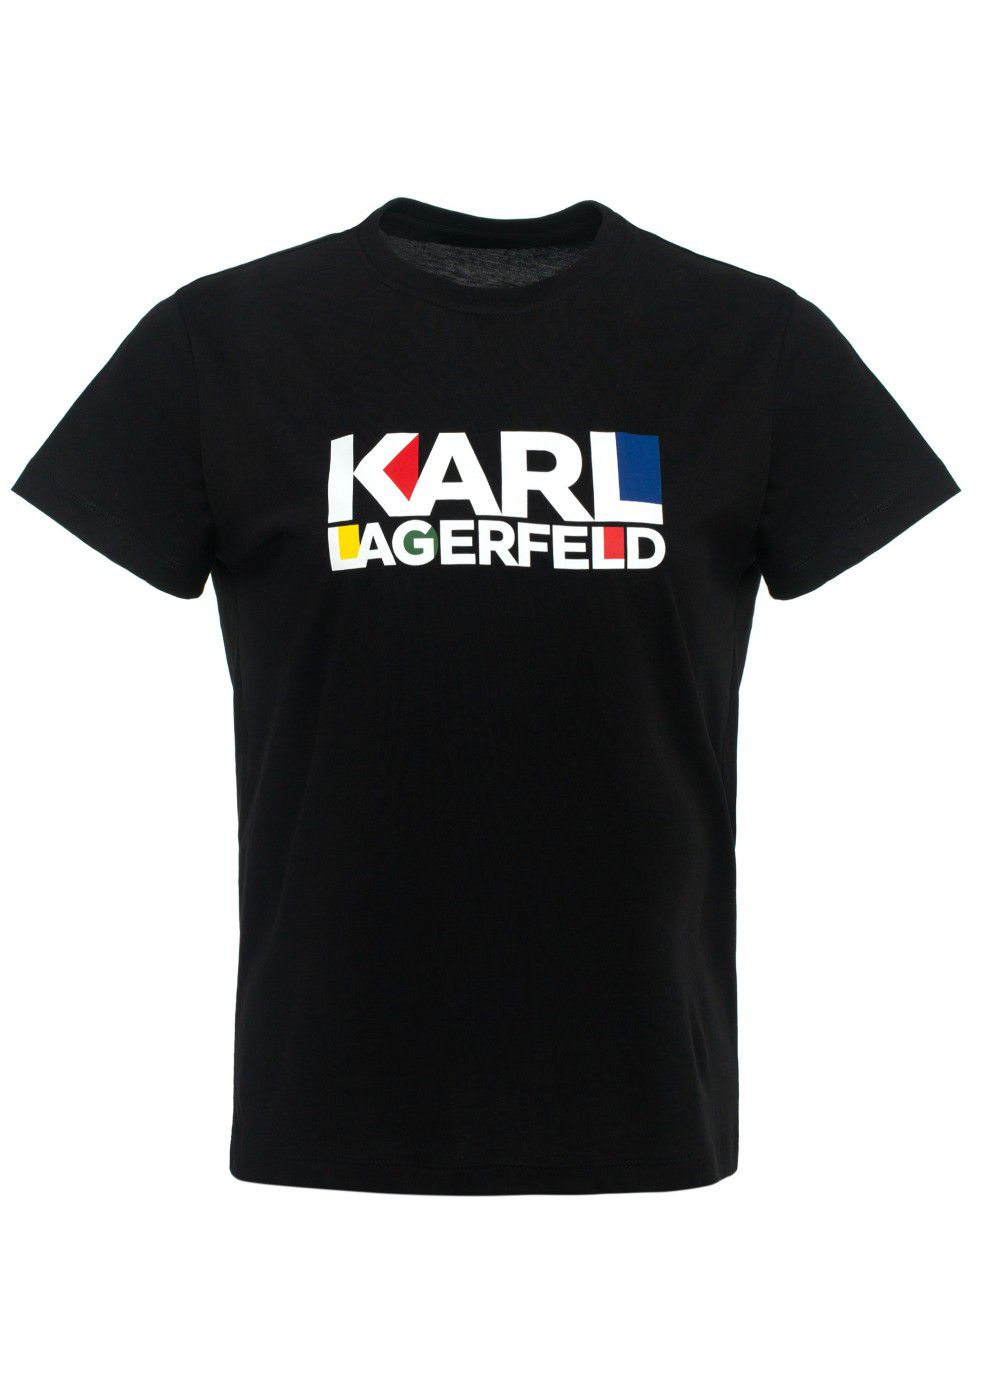 Karl Lagerfeld Ikonik T-Shirt in Black